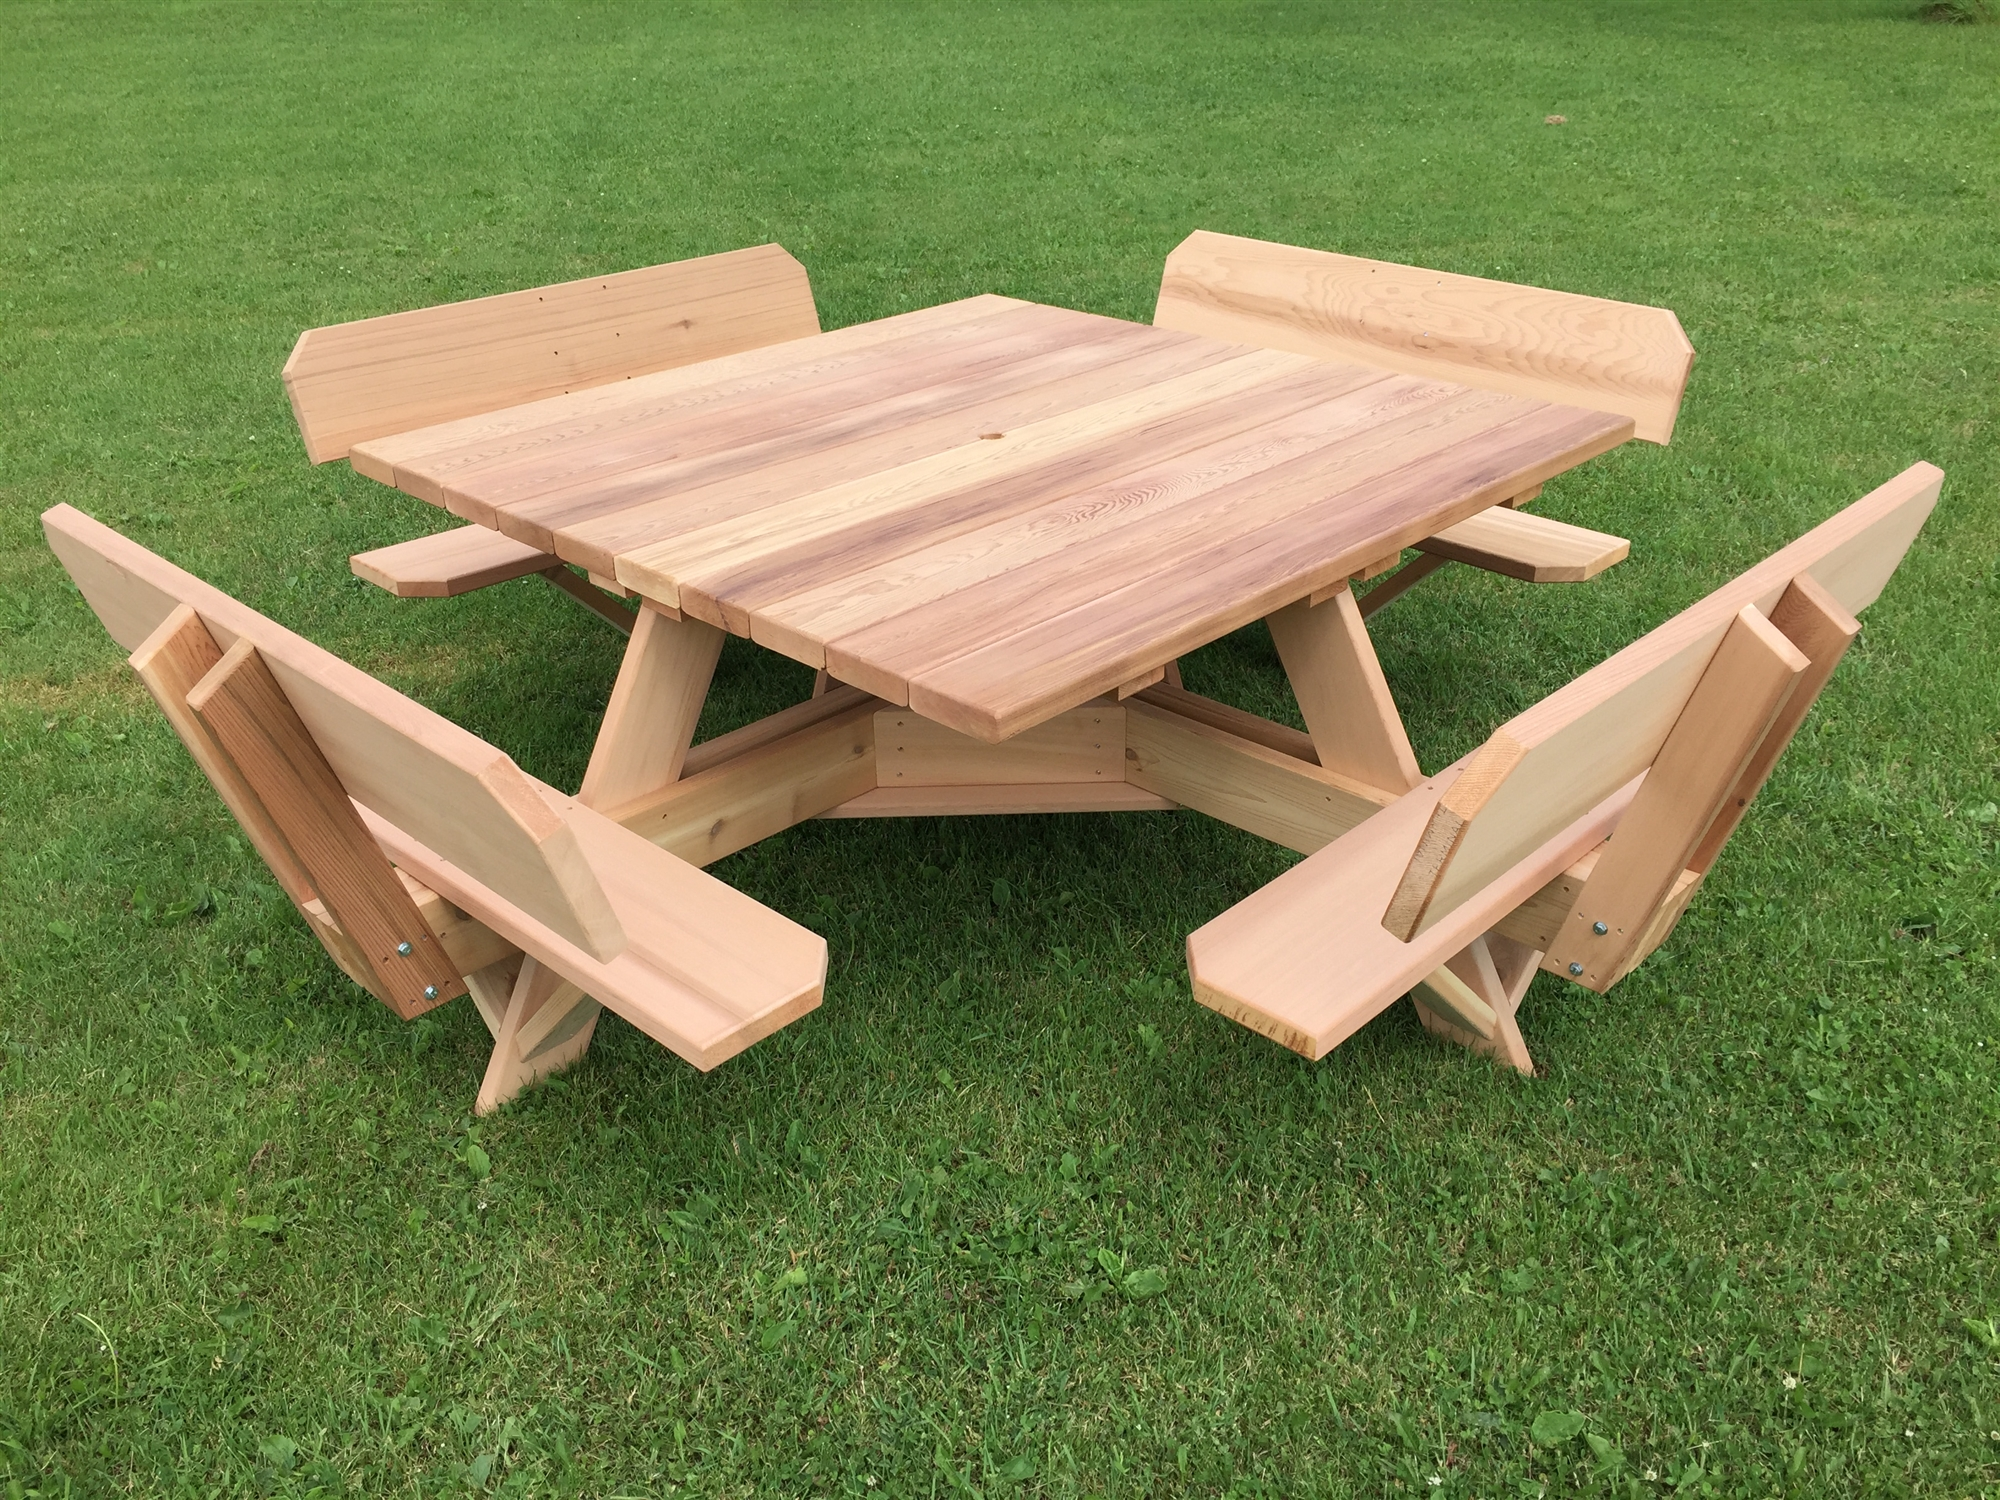 Incredible 56 Square Picnic Table With Backs On Seats Beatyapartments Chair Design Images Beatyapartmentscom